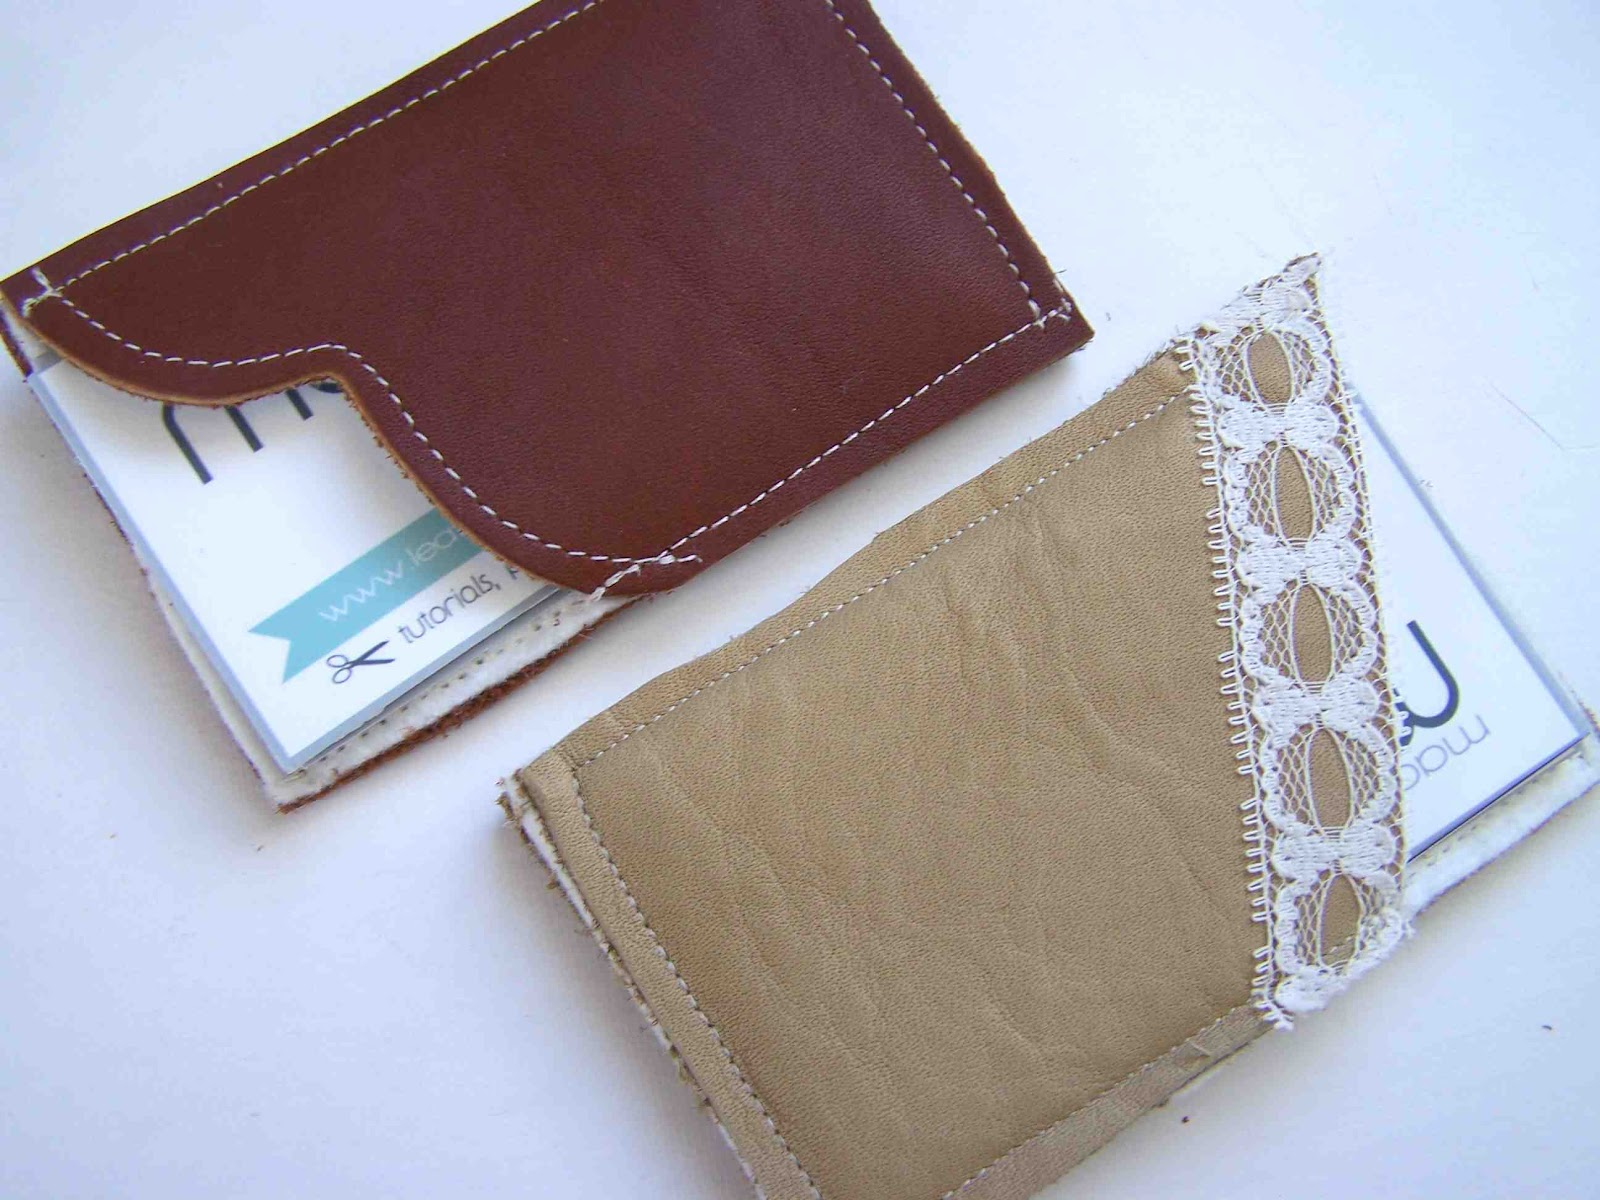 Made by Me. Shared with you.: Leather Business Card Holder Tutorial